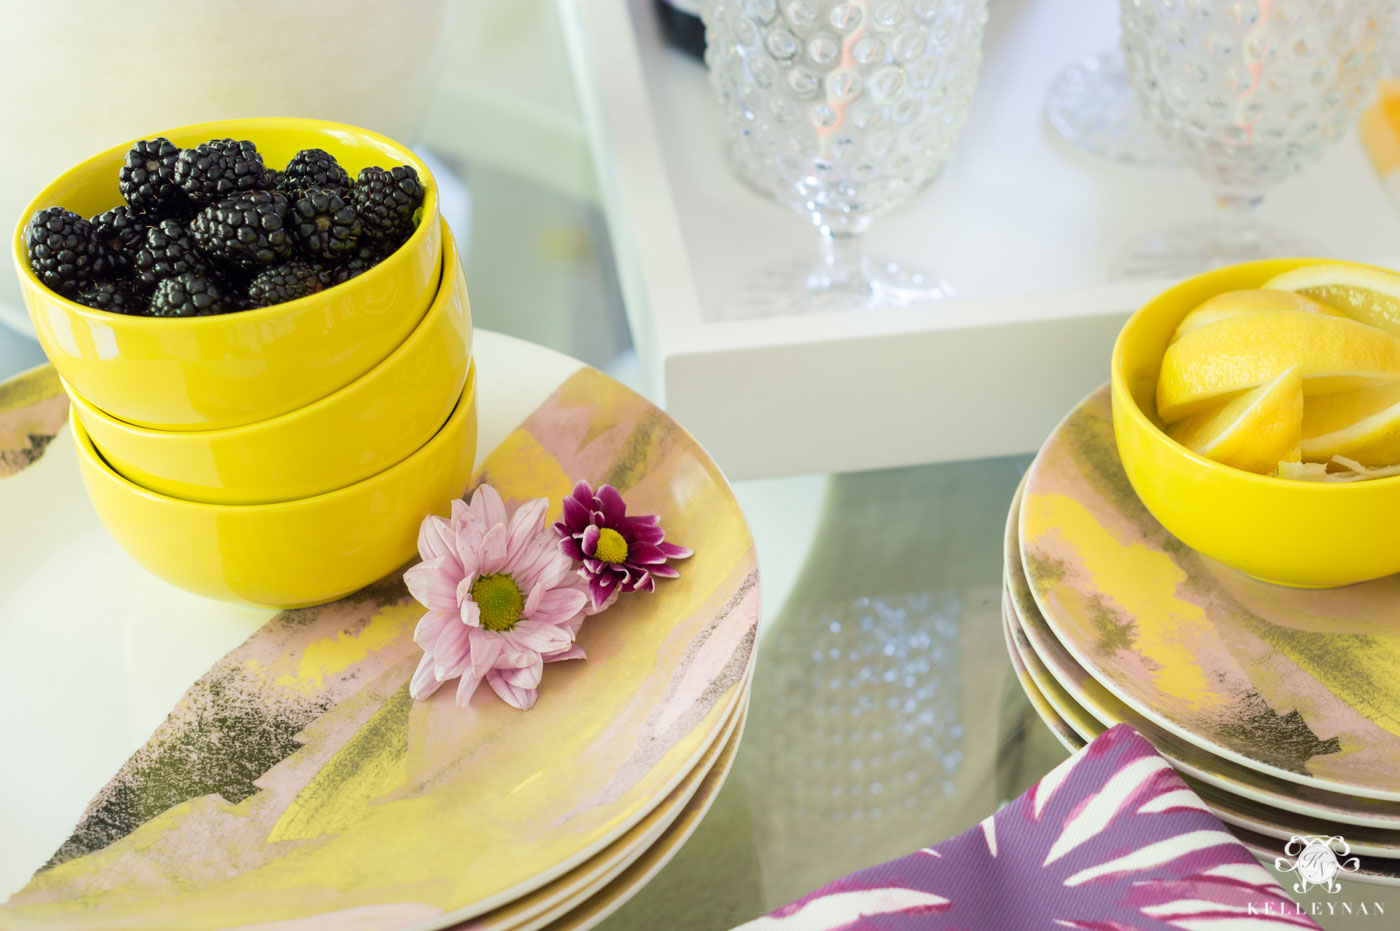 Drew Barrymore Flower Line Favorites with yellow and purple flower scheme